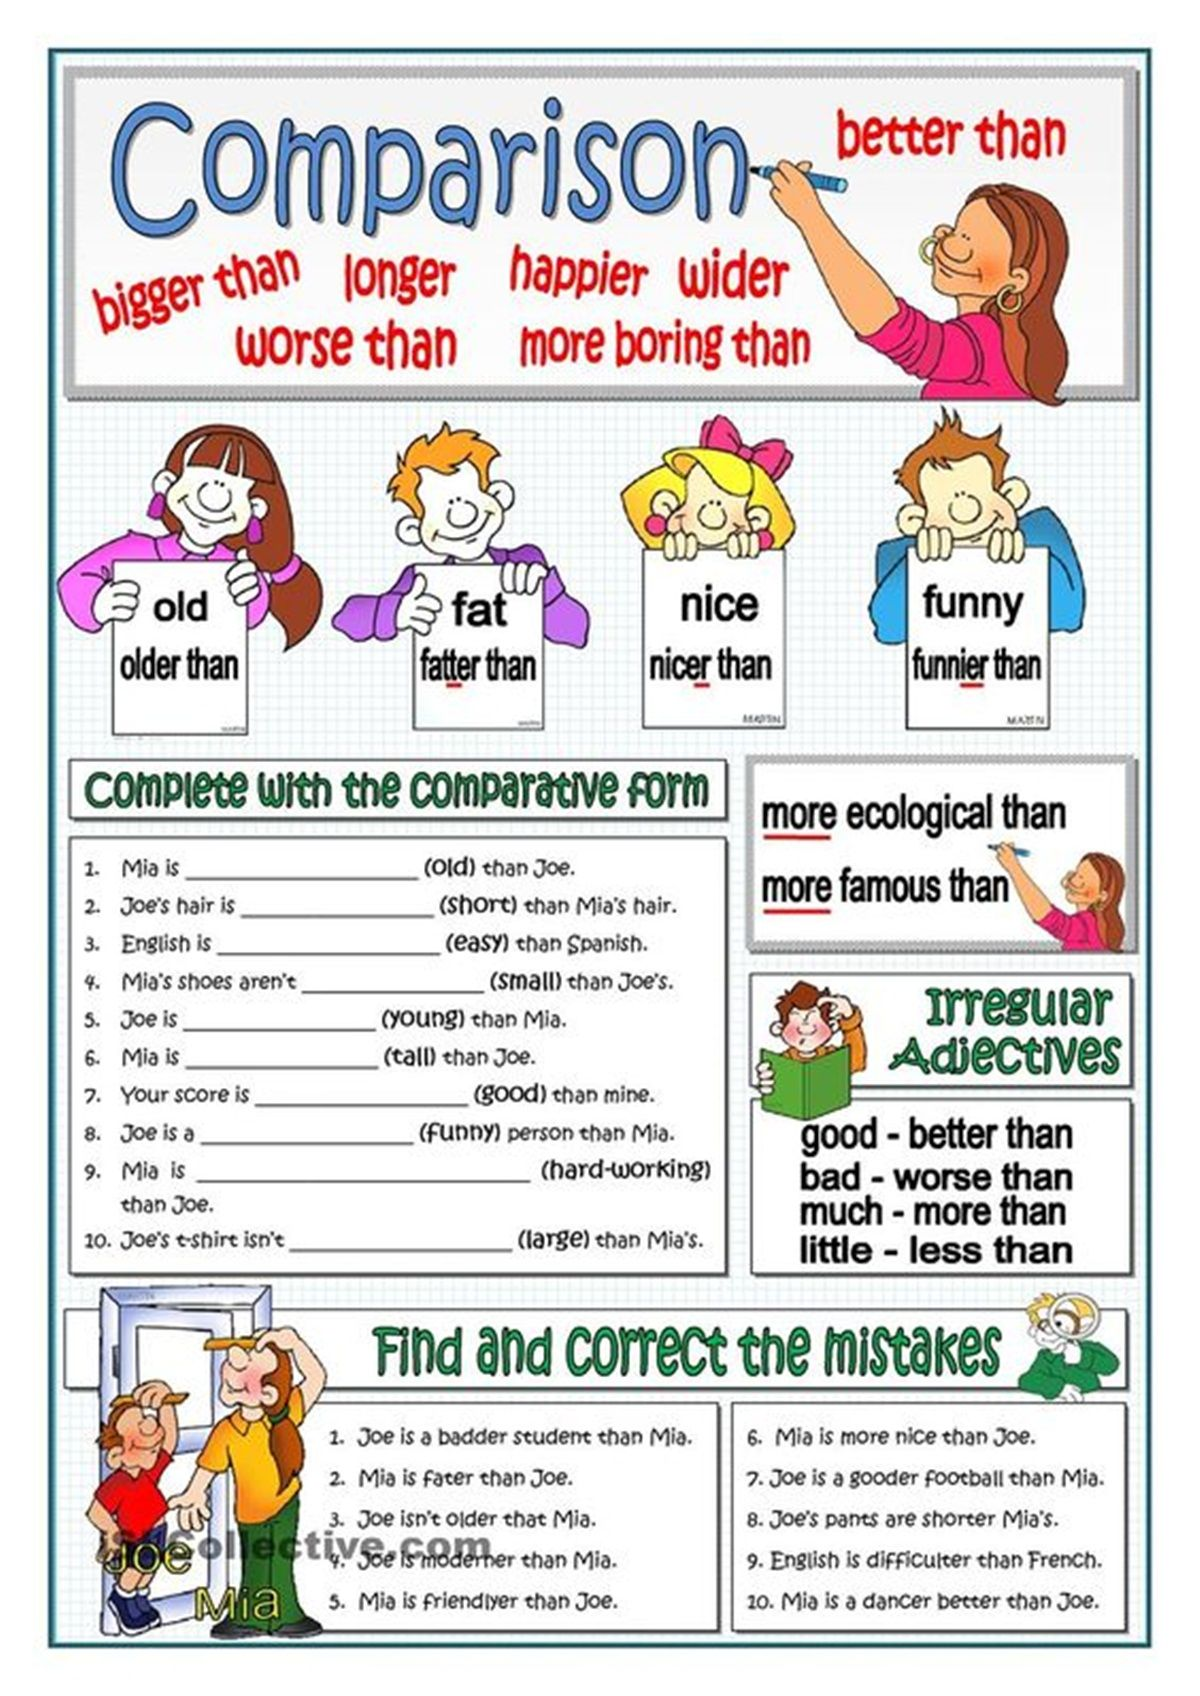 Comparison Of Adjectives In English